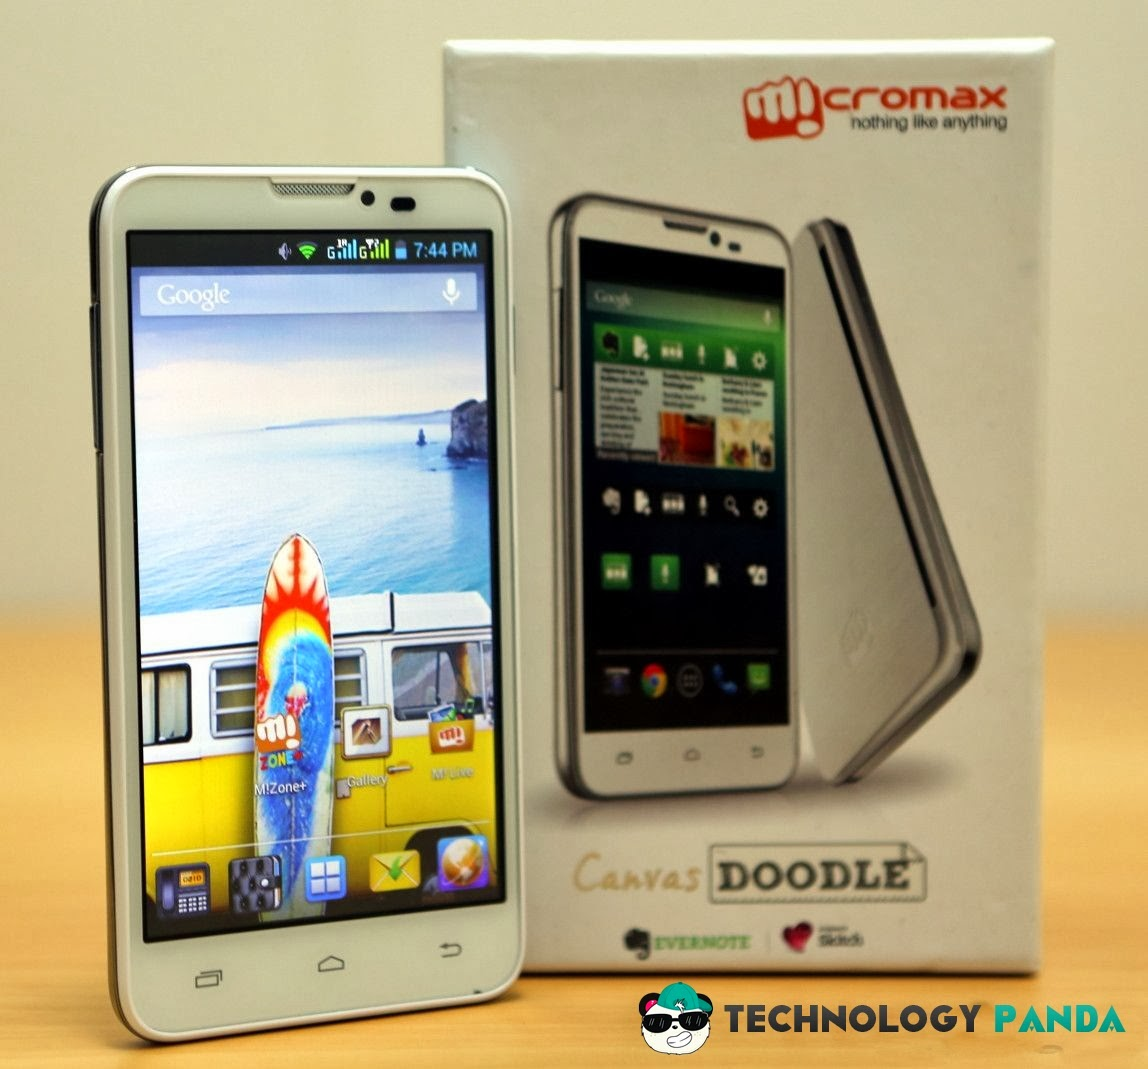 Micromax A111, Best Smartphone, Doodle A111 Storage